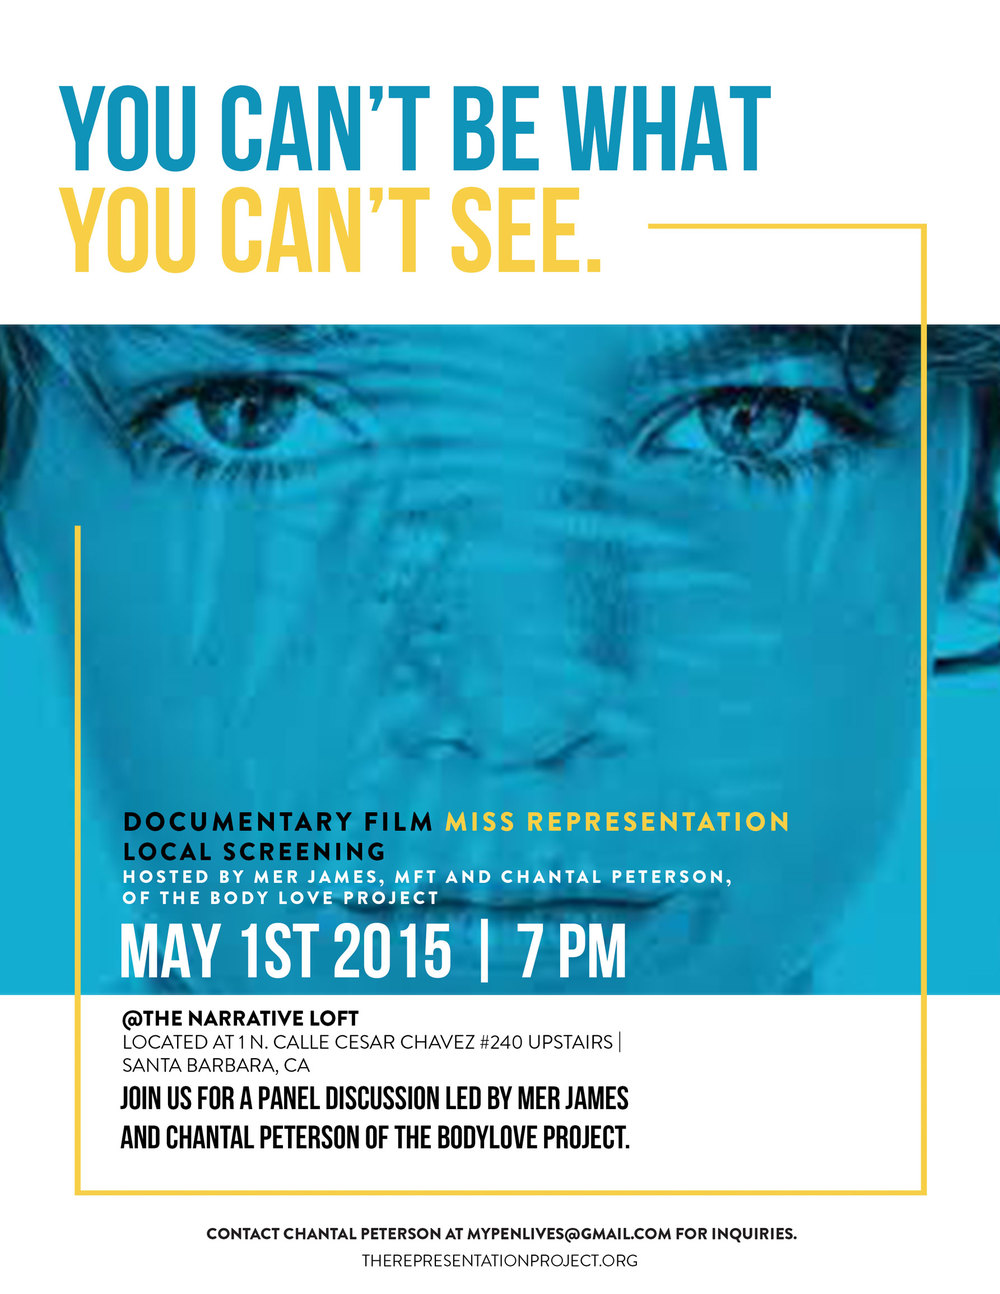 Flyer for the Santa Barbara screening of Miss Representation